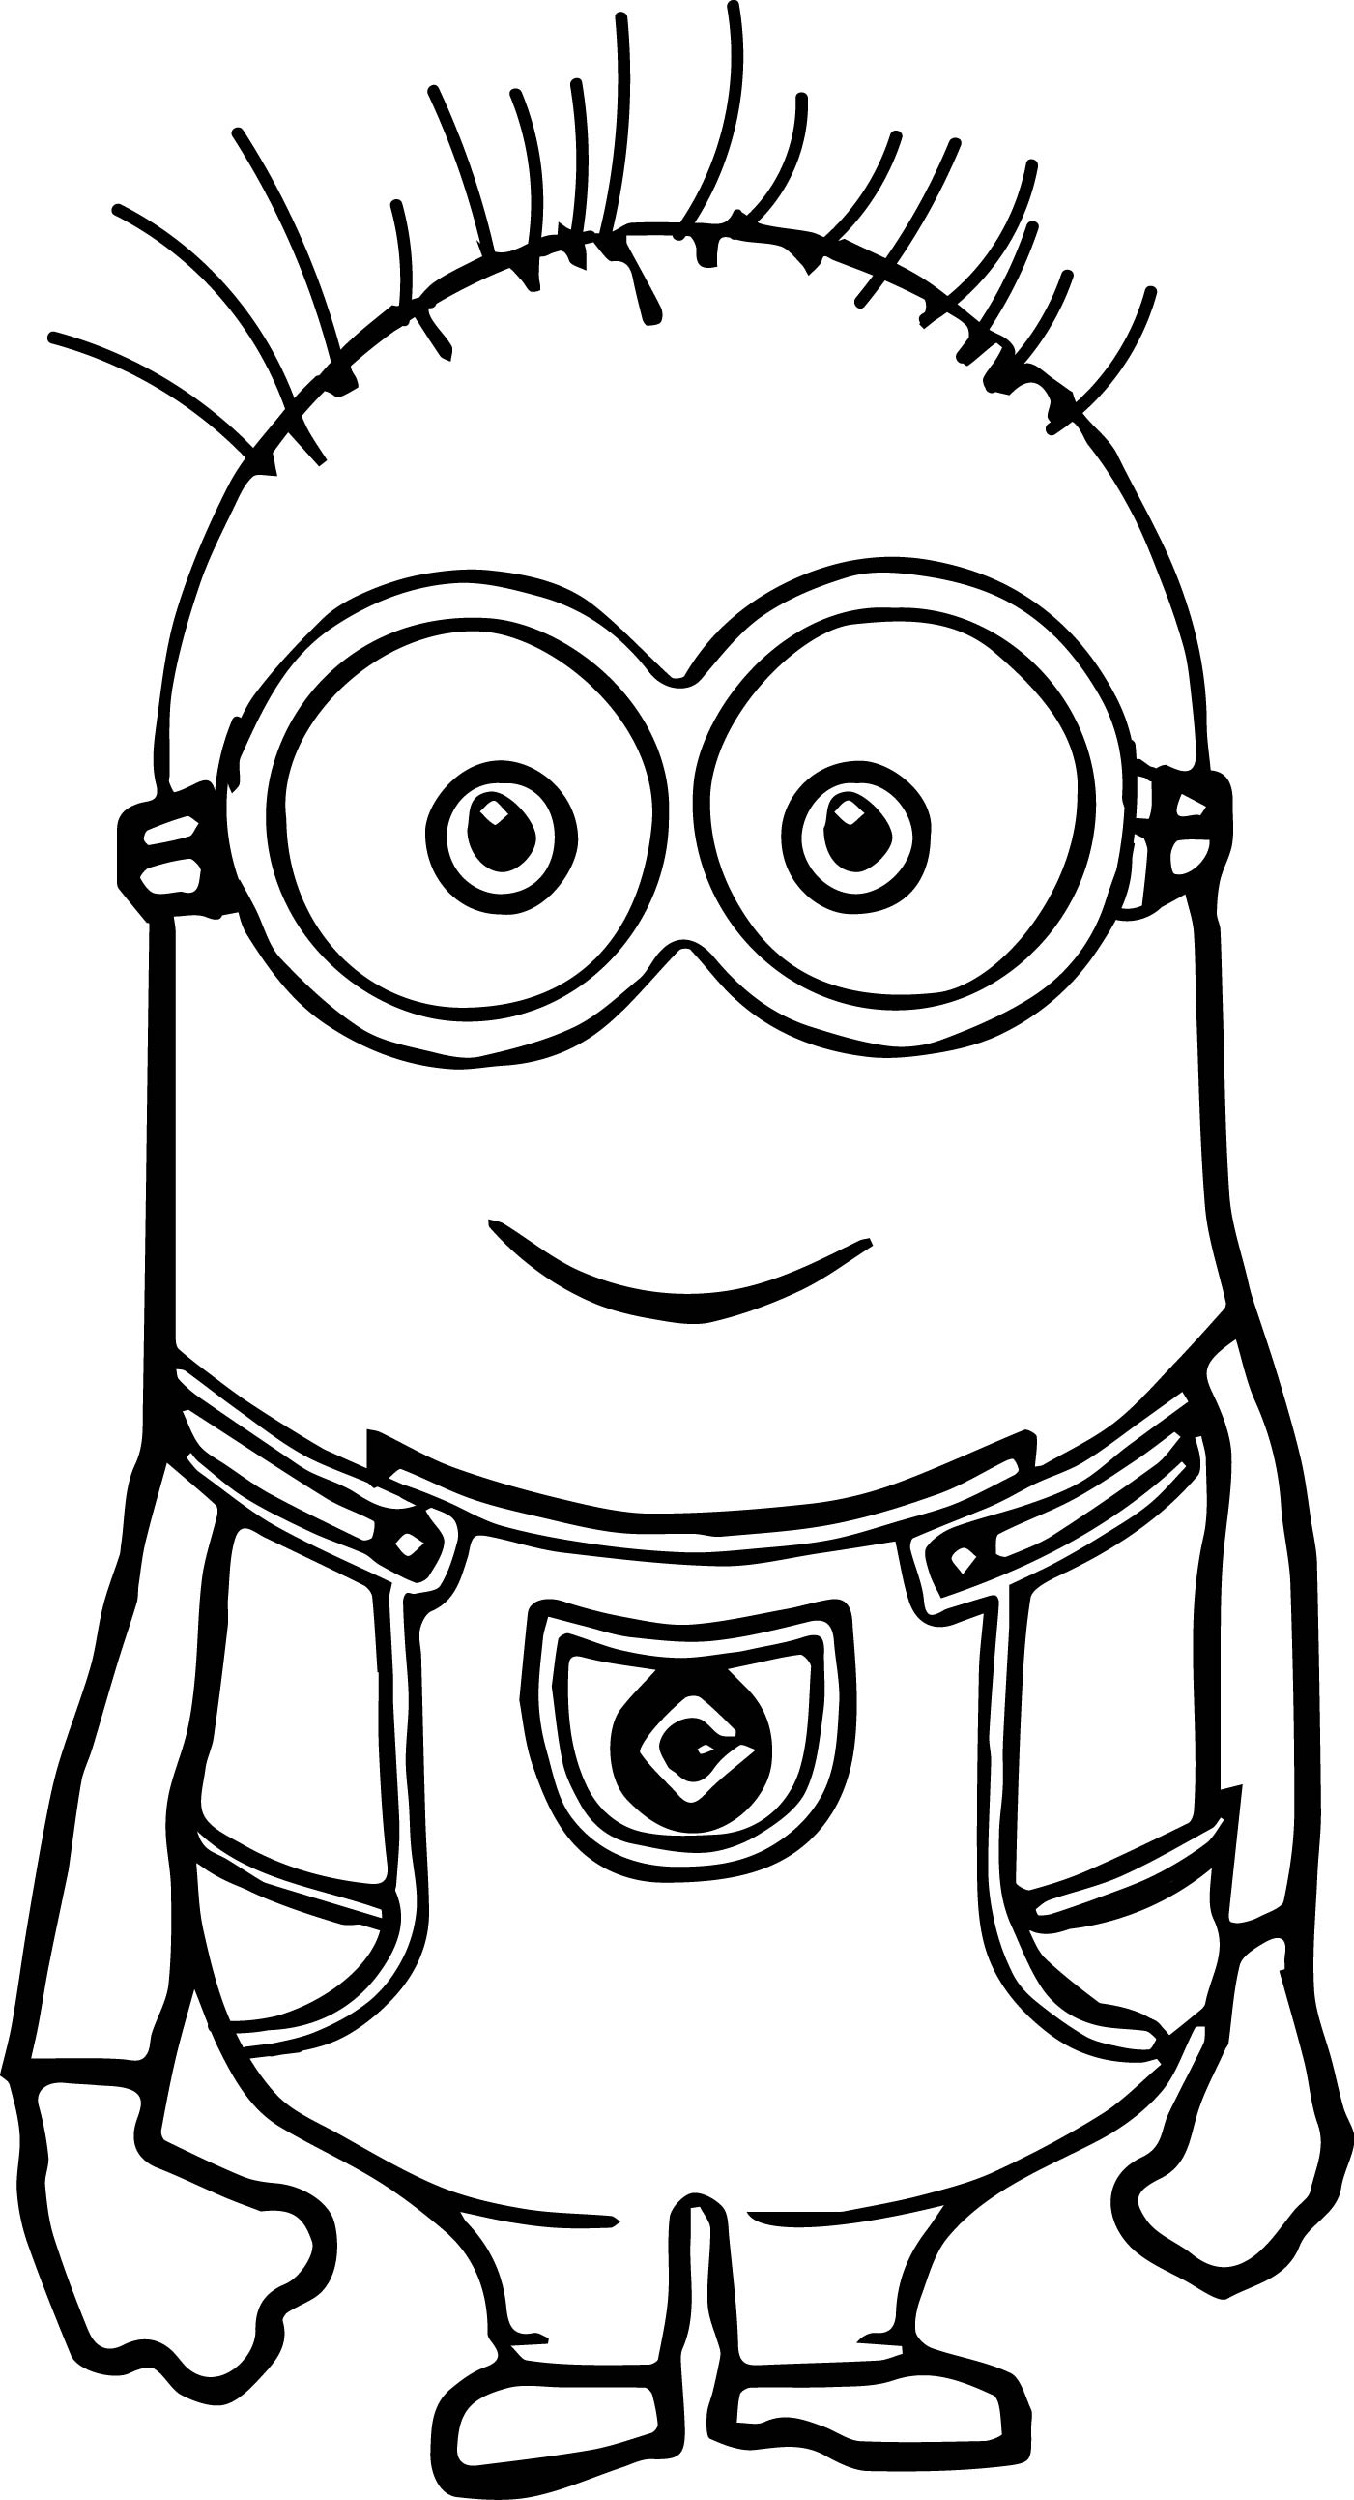 Cute Fun Minion Coloring Pages Inspiration Example Collection